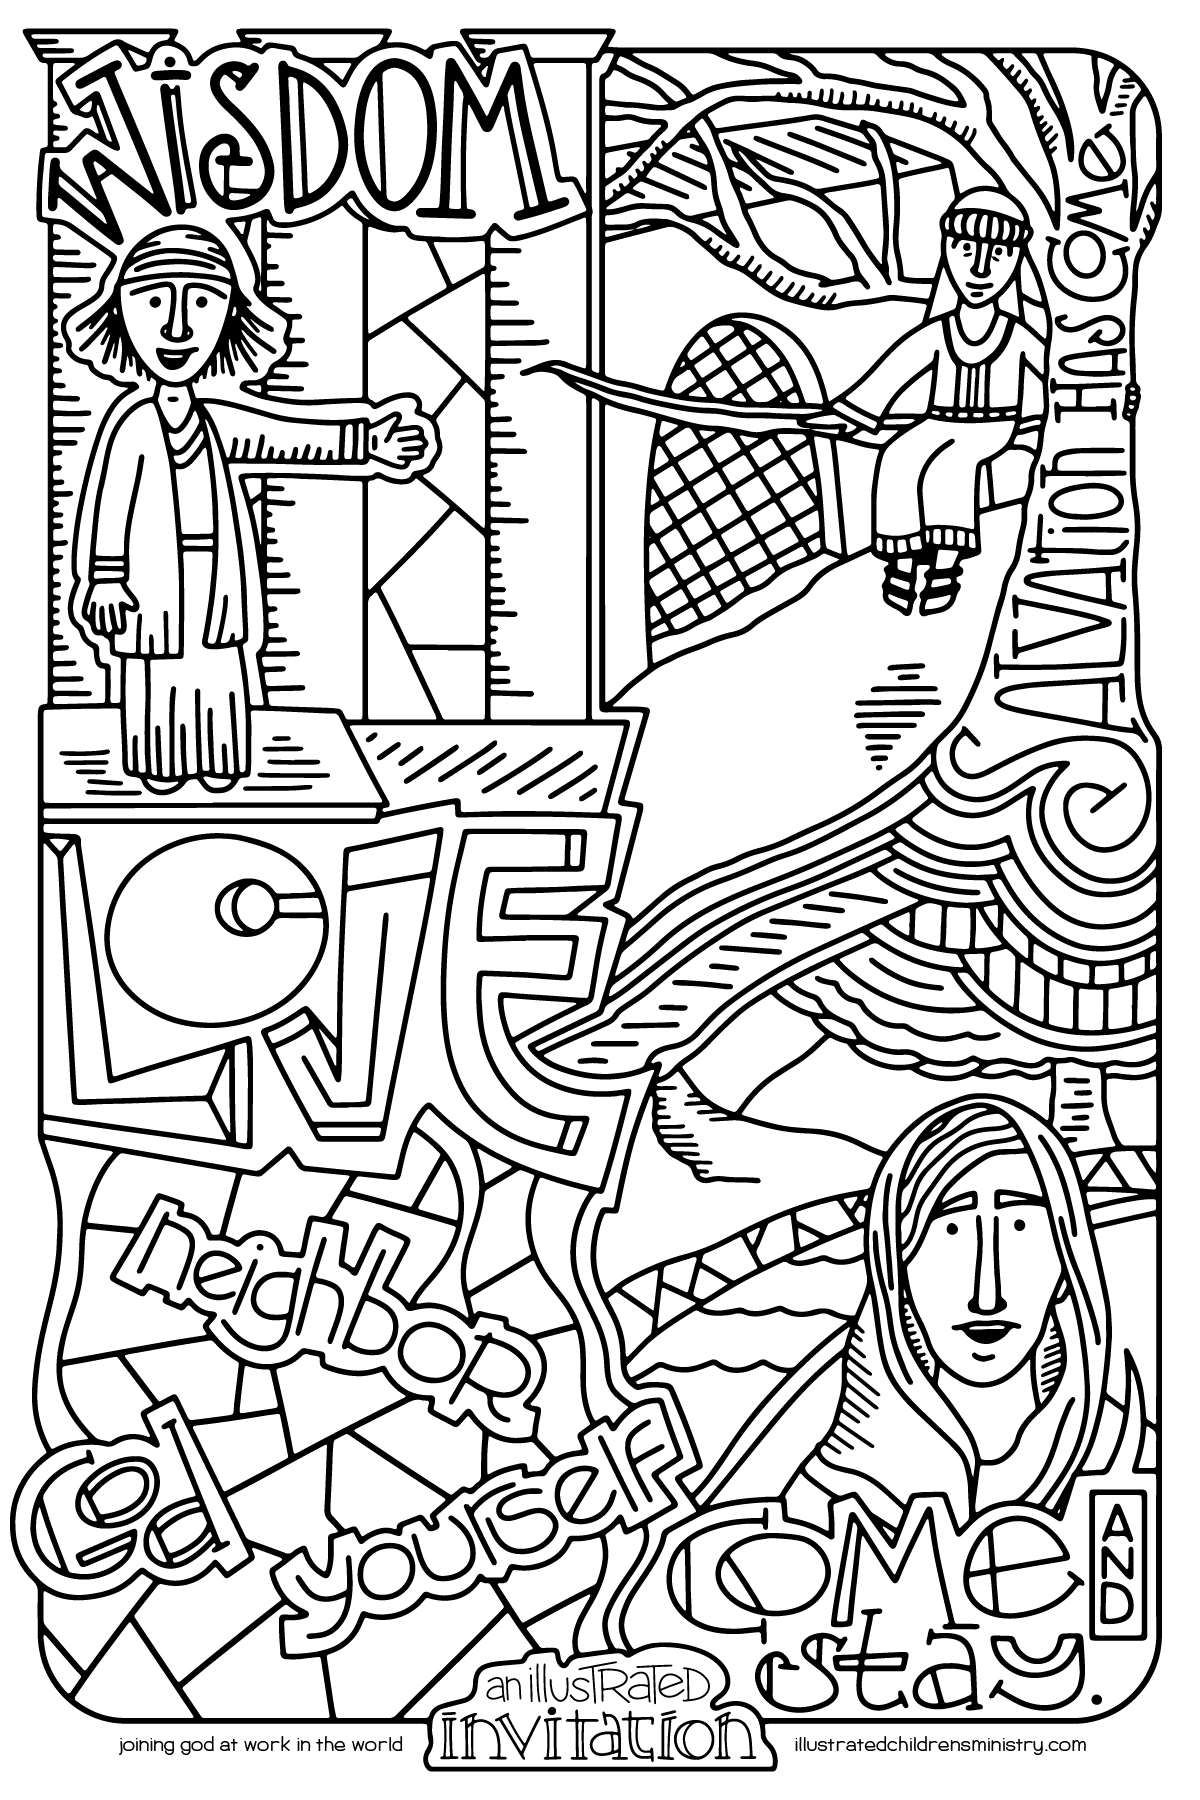 The Birth of Jesus New Testament Coloring Pages - Evil King Harod ... | 1800x1200